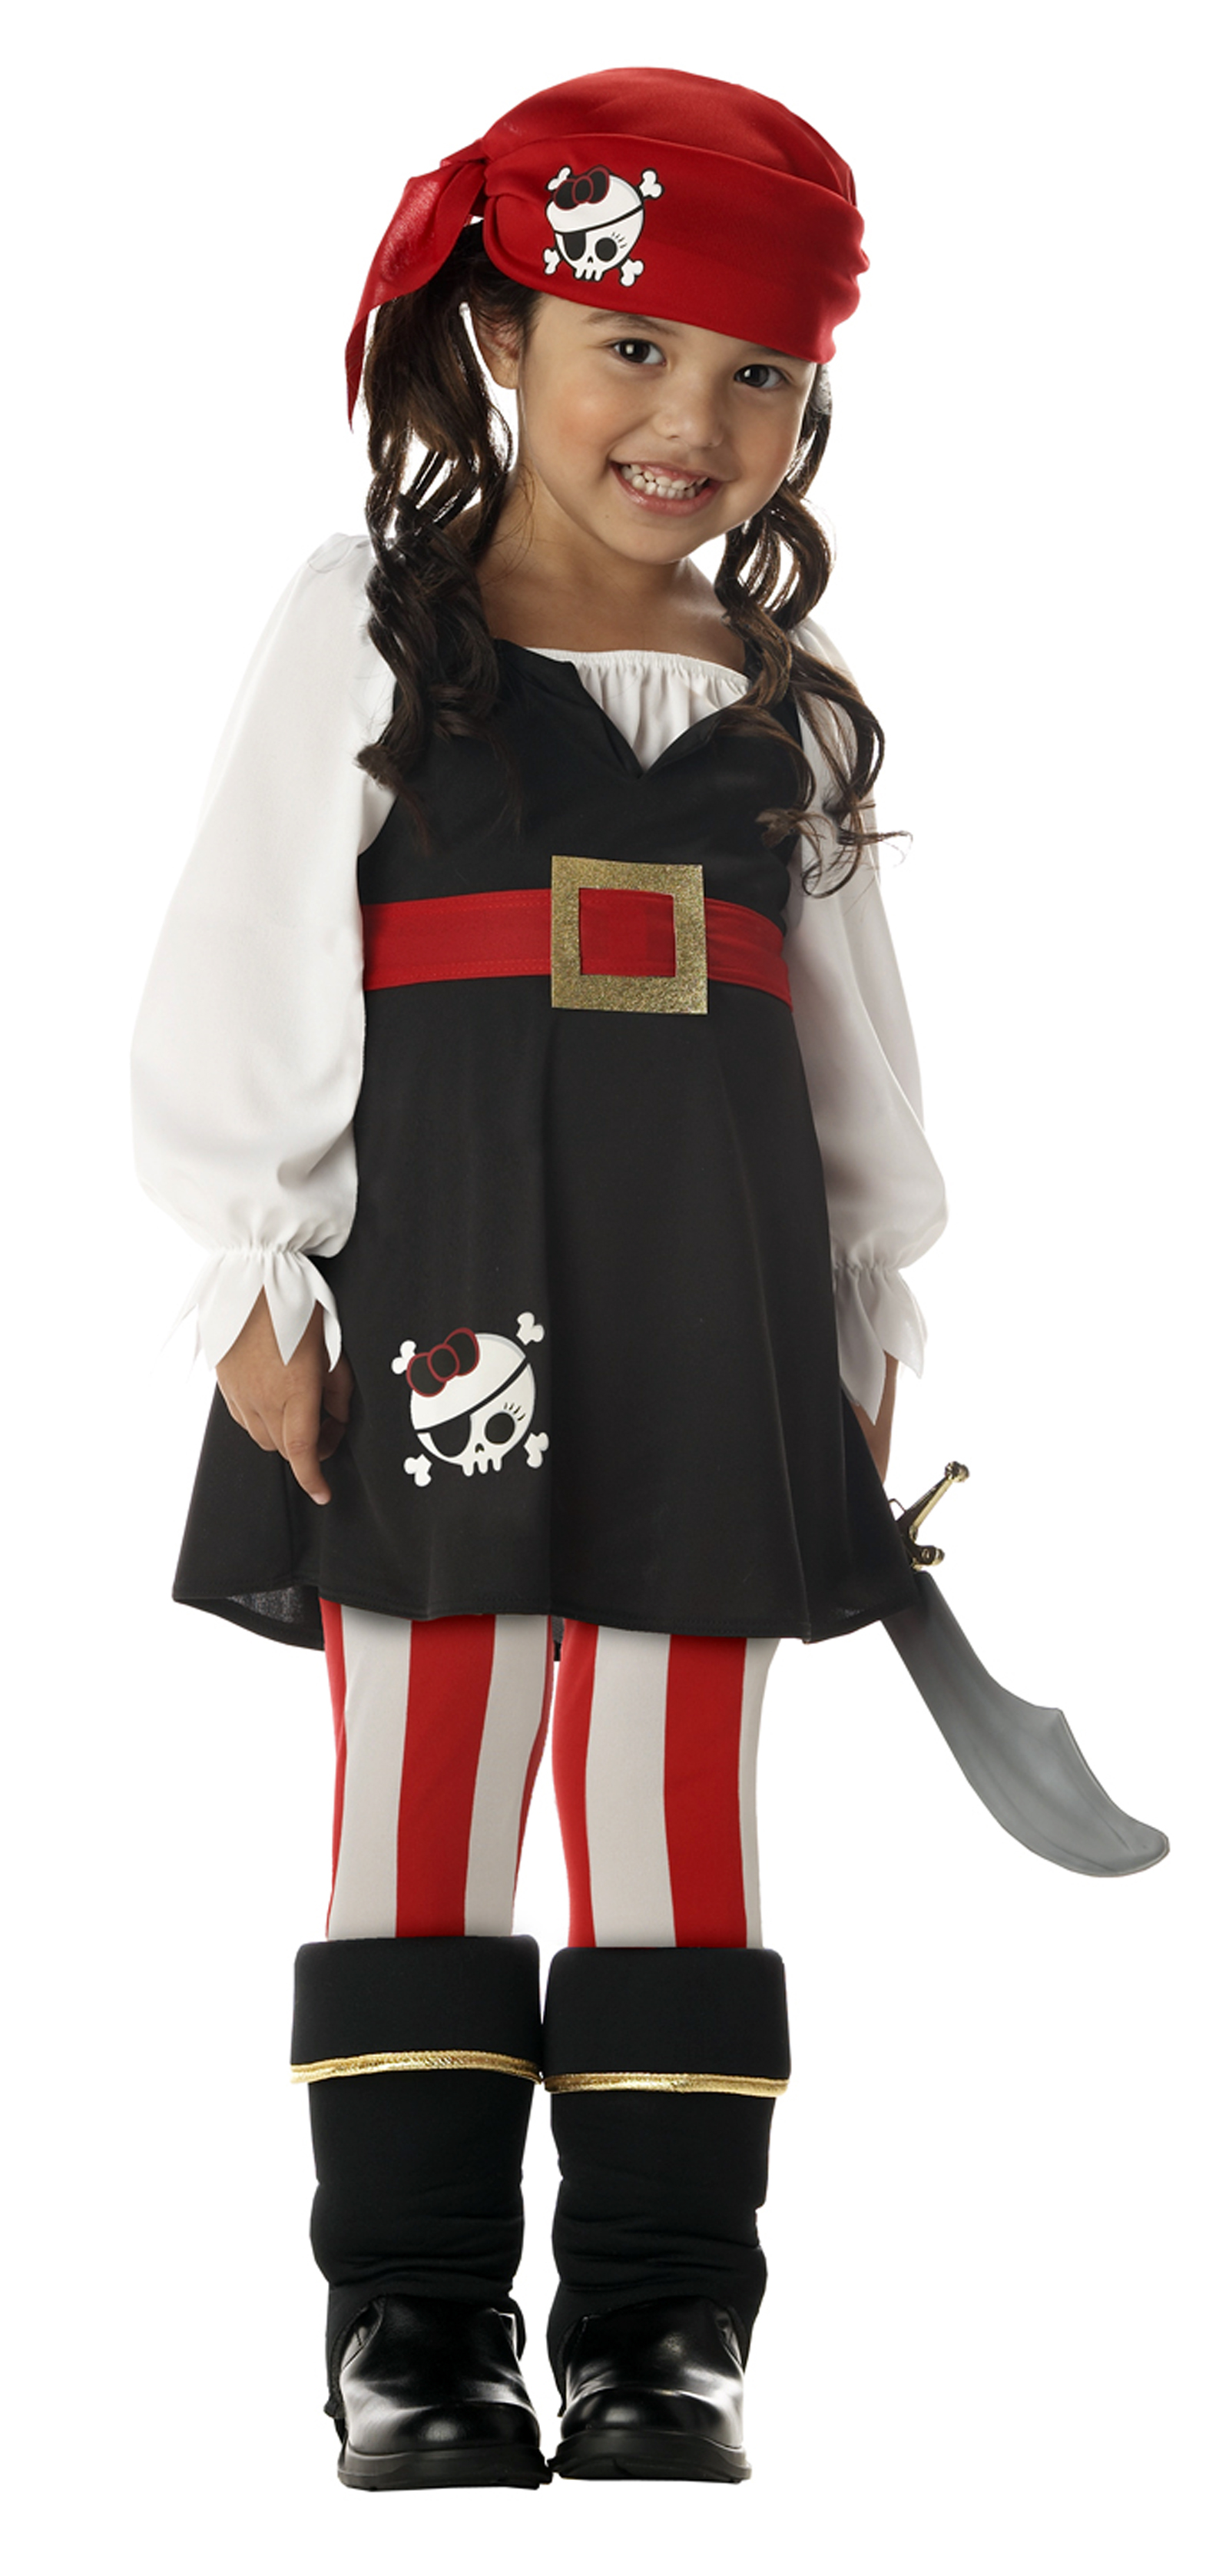 Precious Lilu0027 Pirate Toddler / Child Costume  sc 1 st  Rookie Moms & How to turn your child into a pirate: Halloween costume idea #297 ...